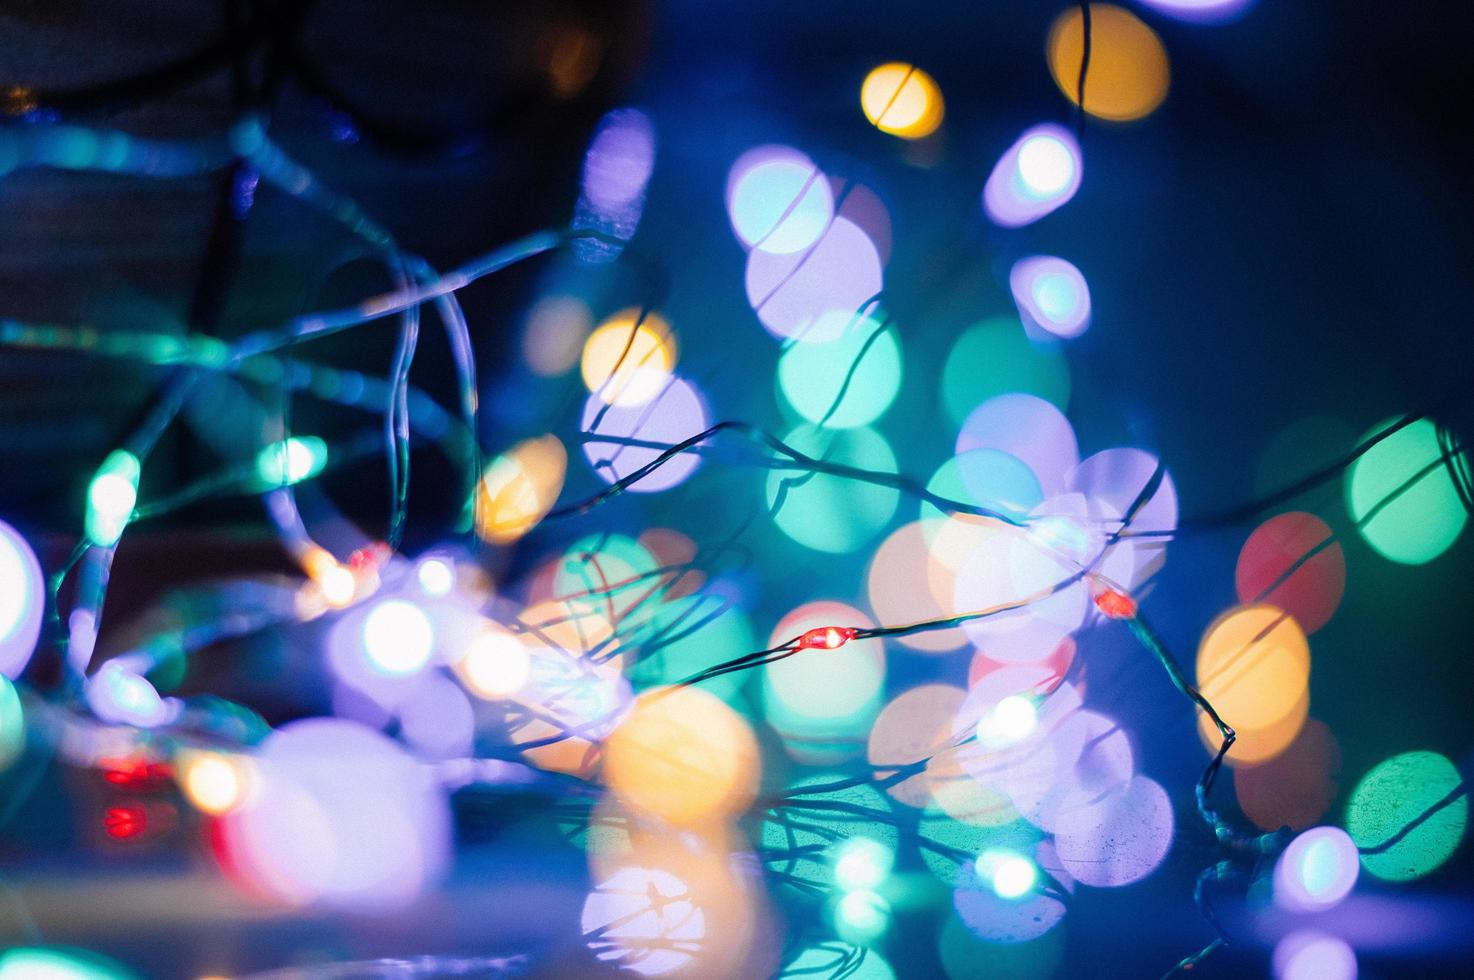 Bokeh photography of string lights photo